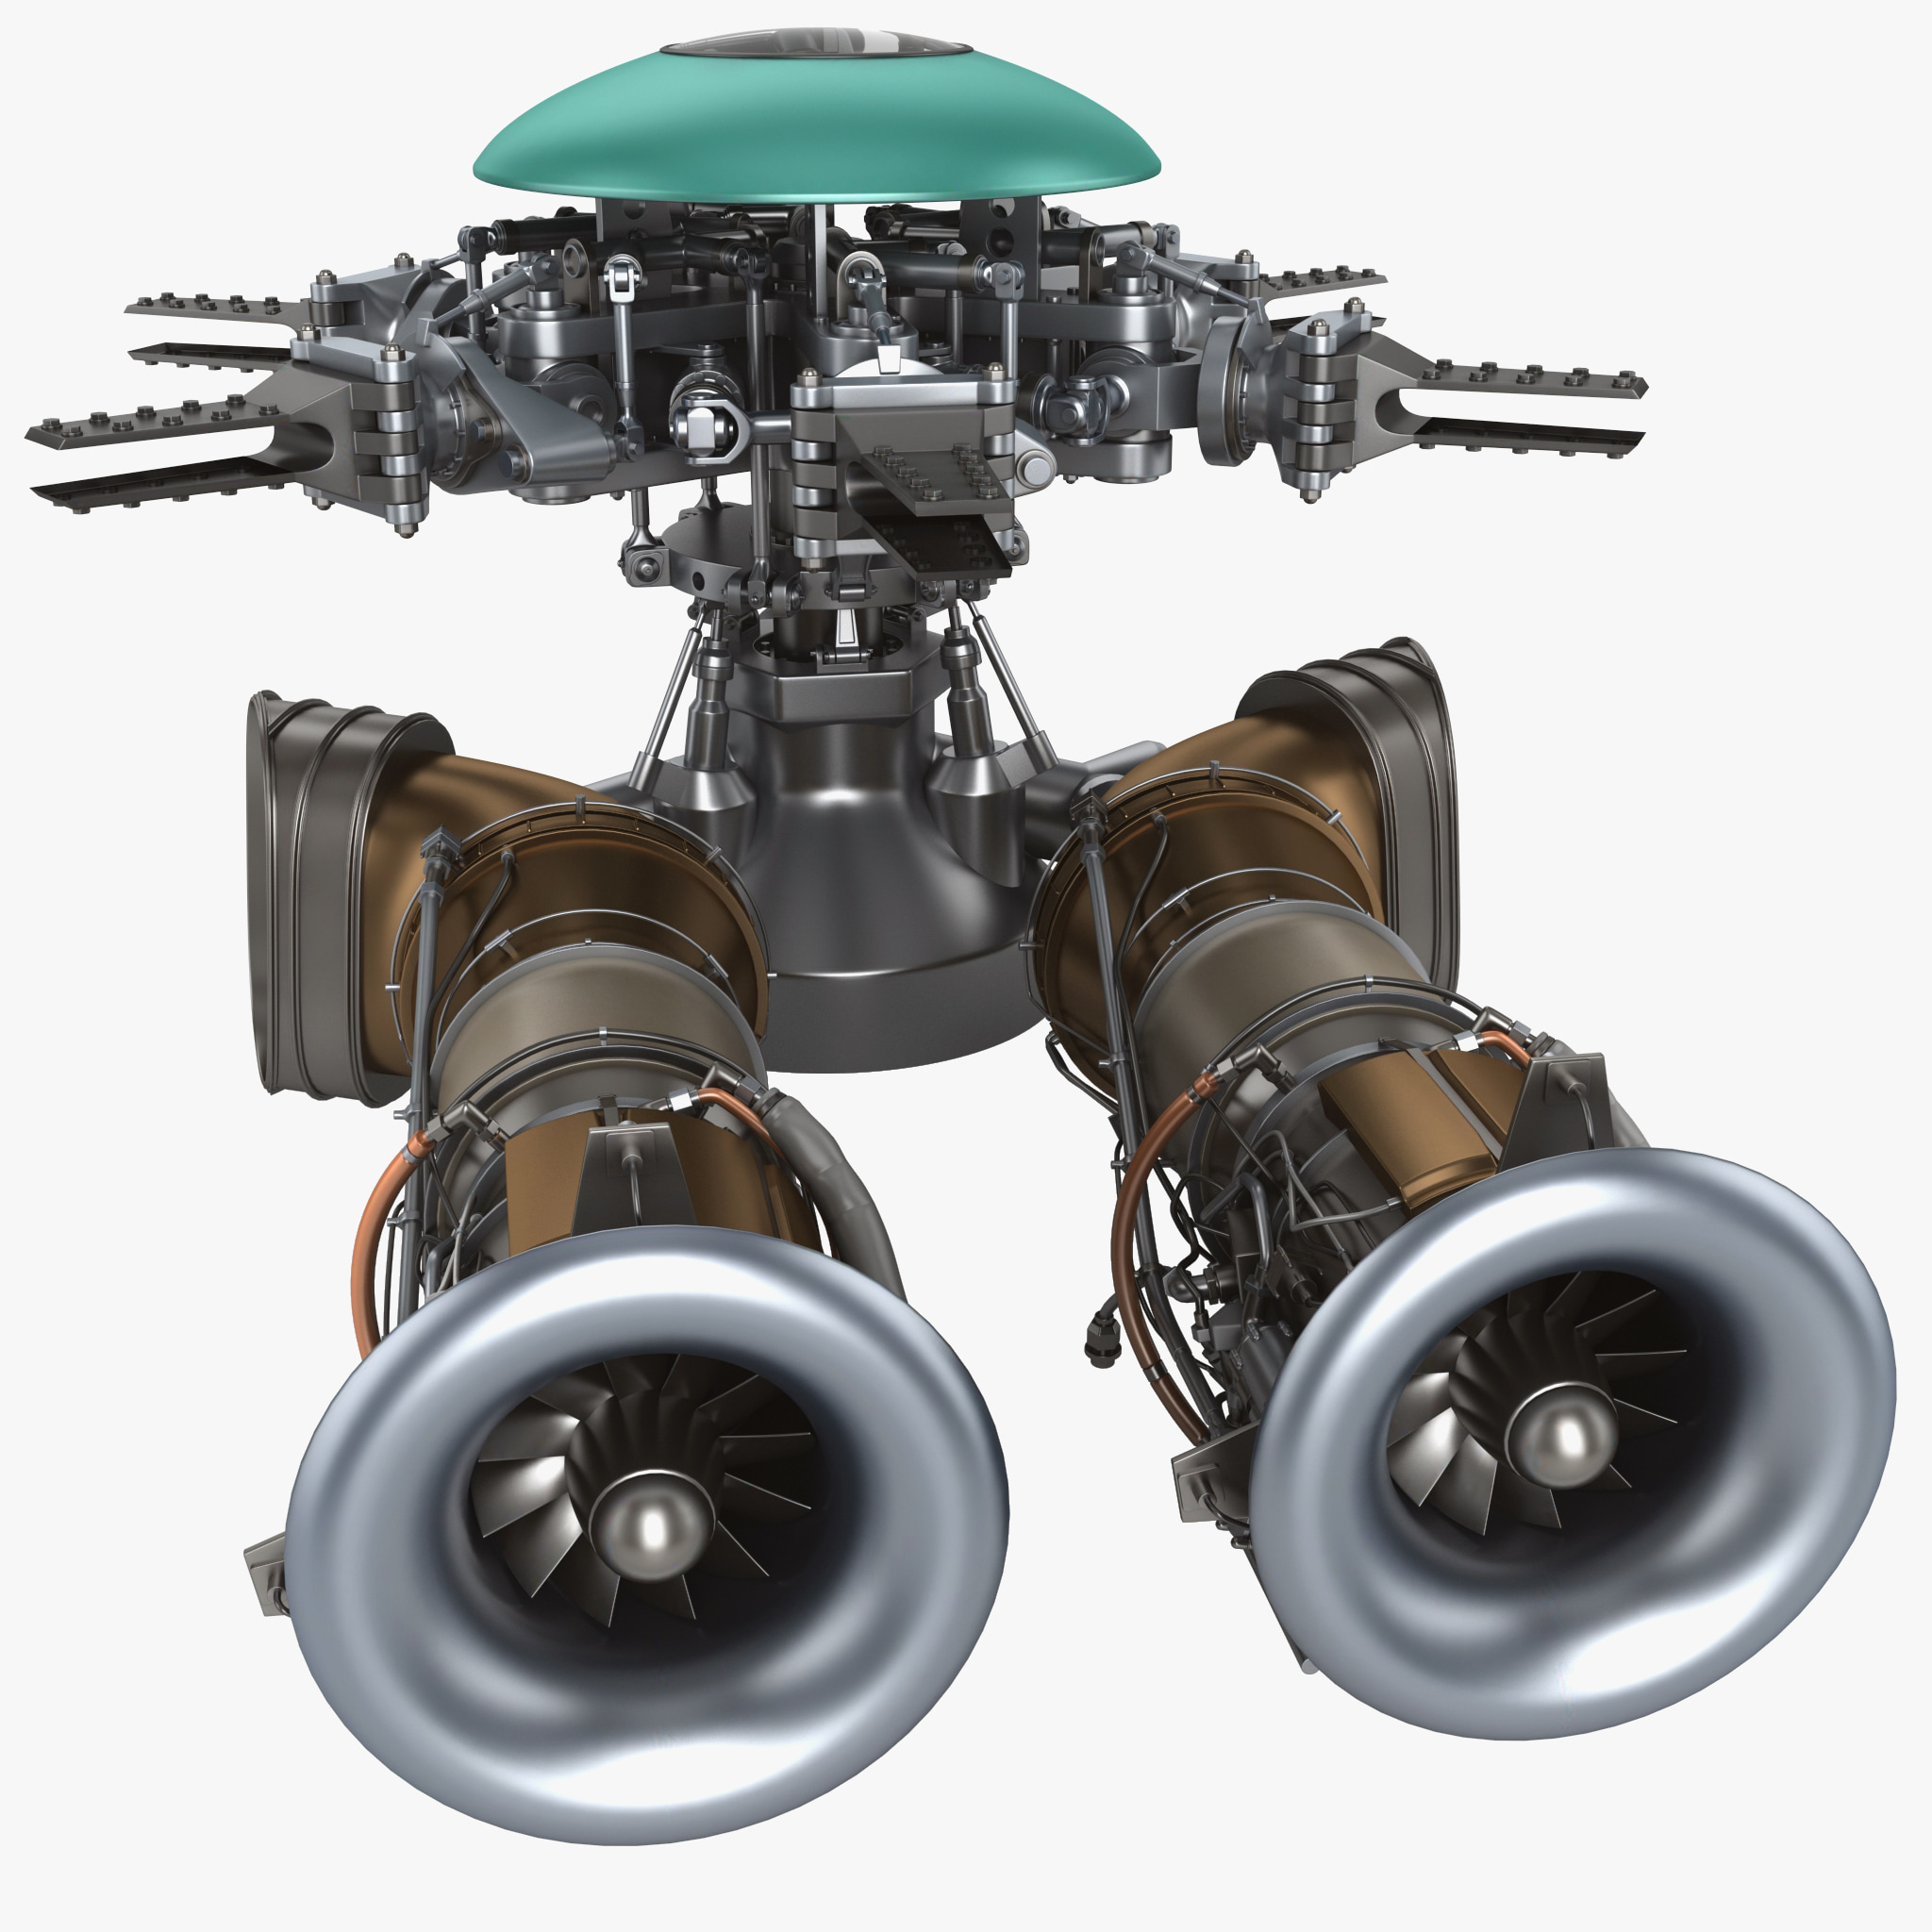 Helicopter Engine 4_1.jpg